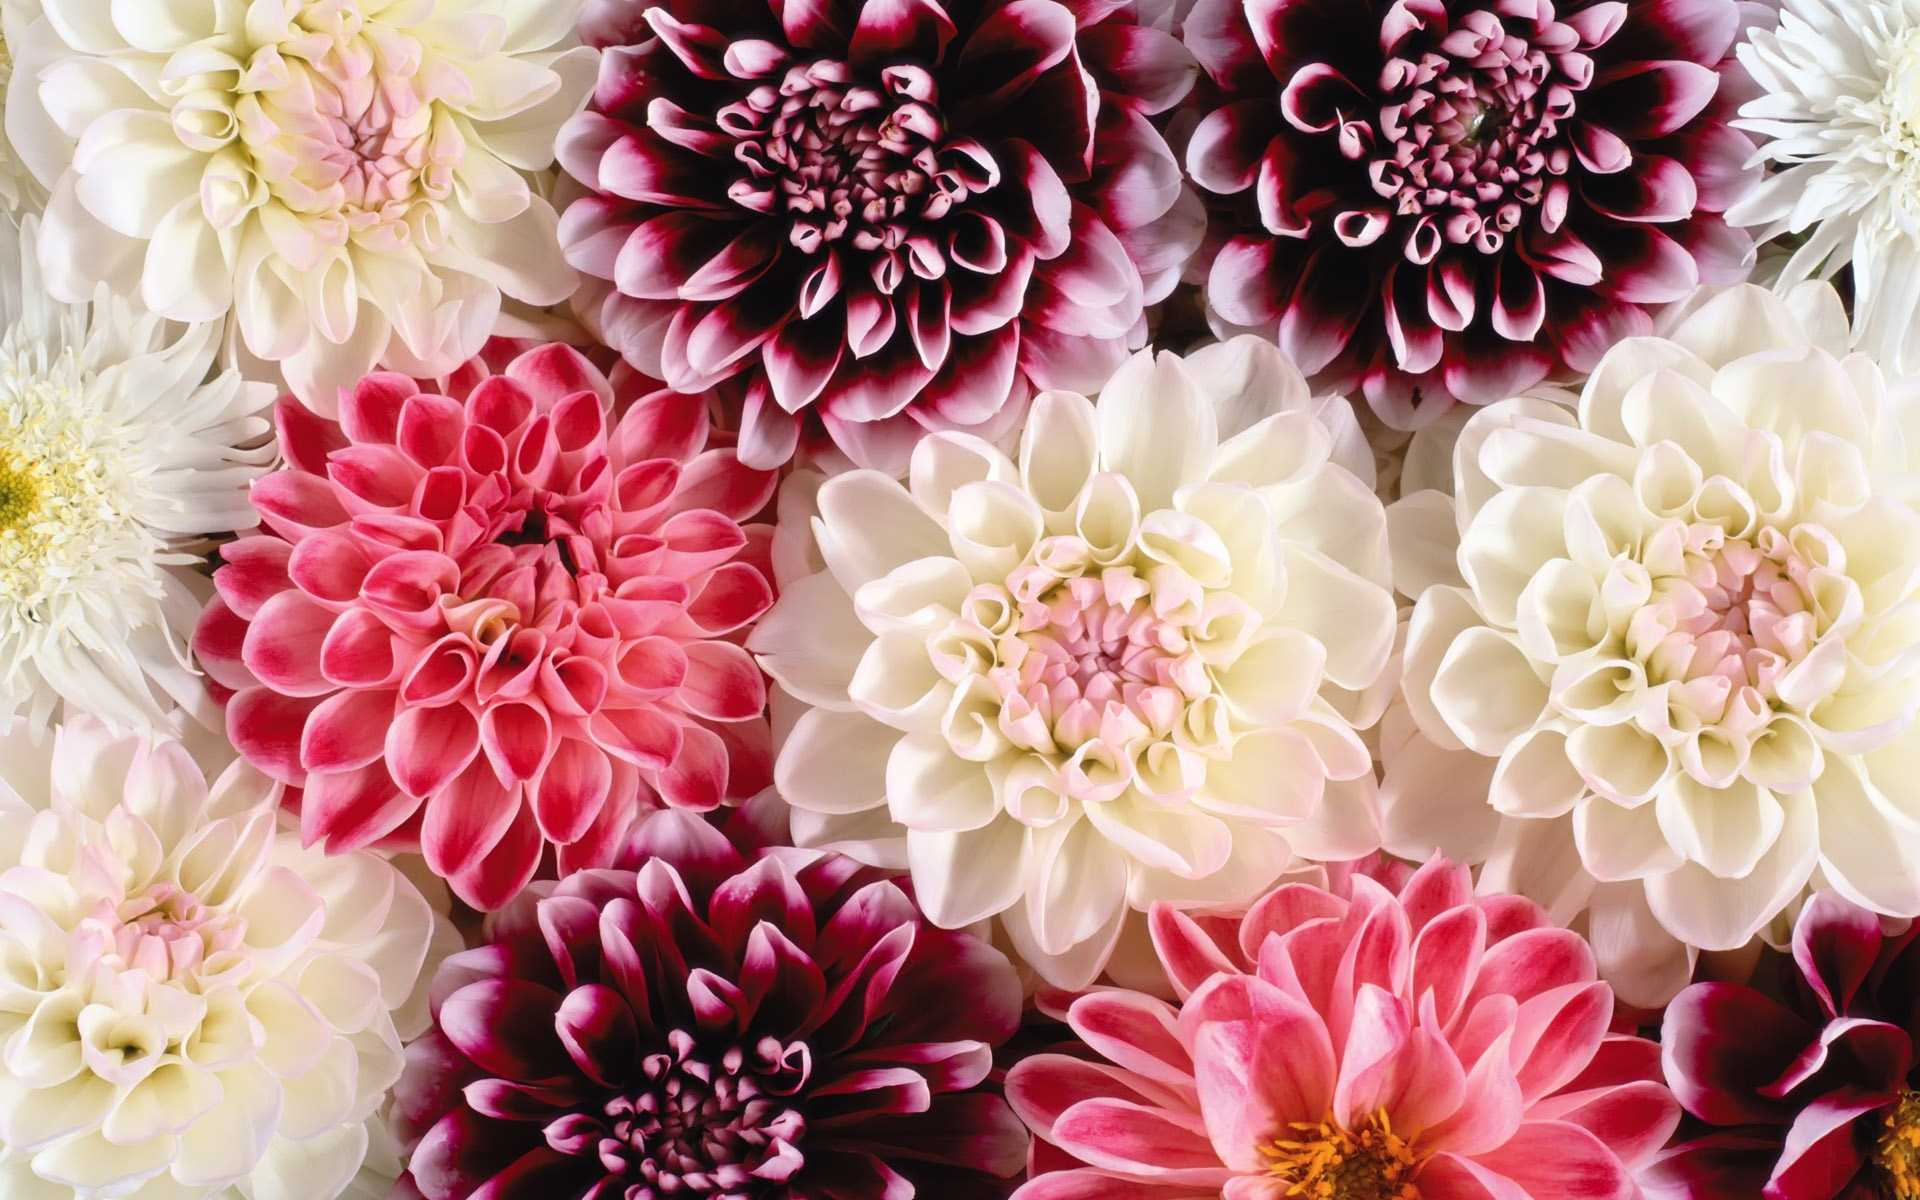 Flower Backgrounds Free Pixelstalk